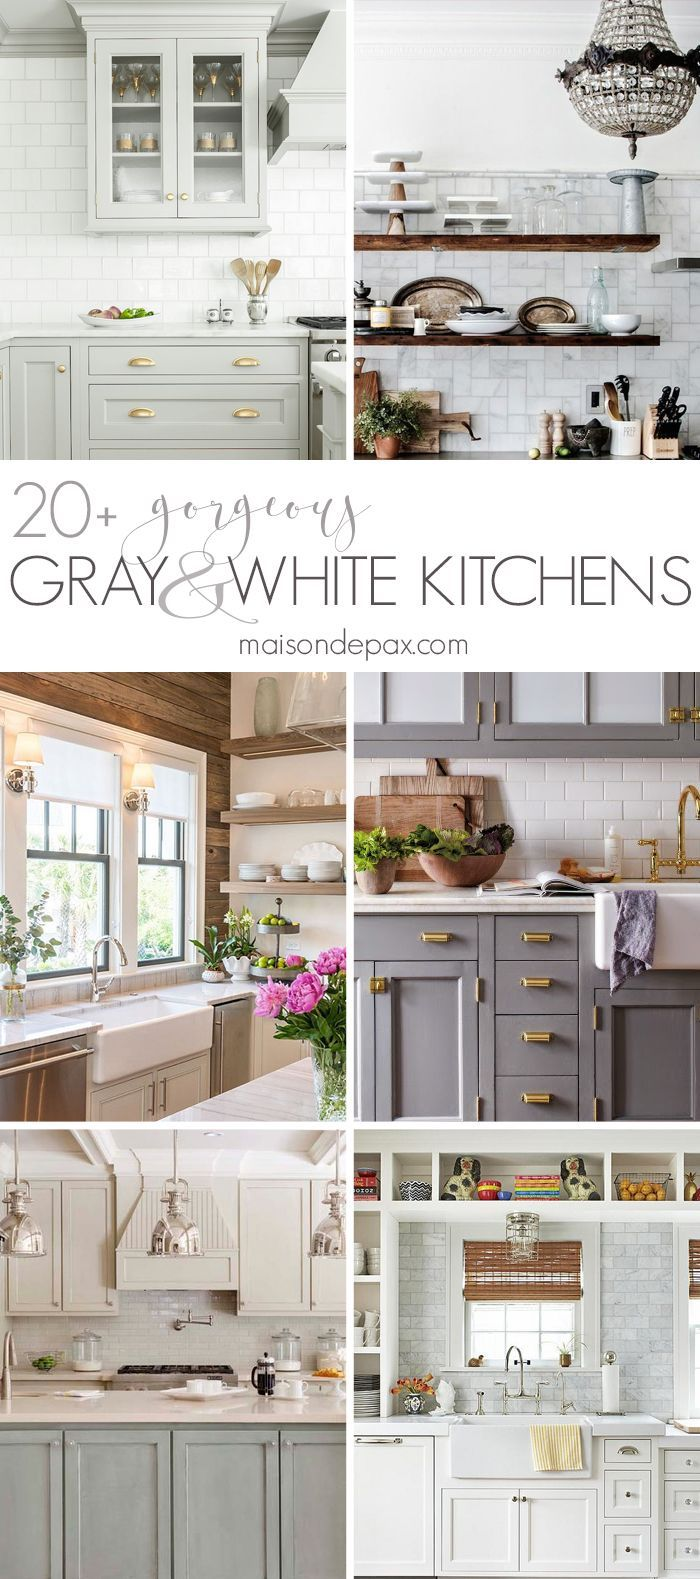 So many stunning gray and white kitchens! Including marble countertops and backsplashes, subway tiles, open shelving, farmhouse sinks, two tone cabinets, and more. Kitchen design inspiration   maisondepax.com